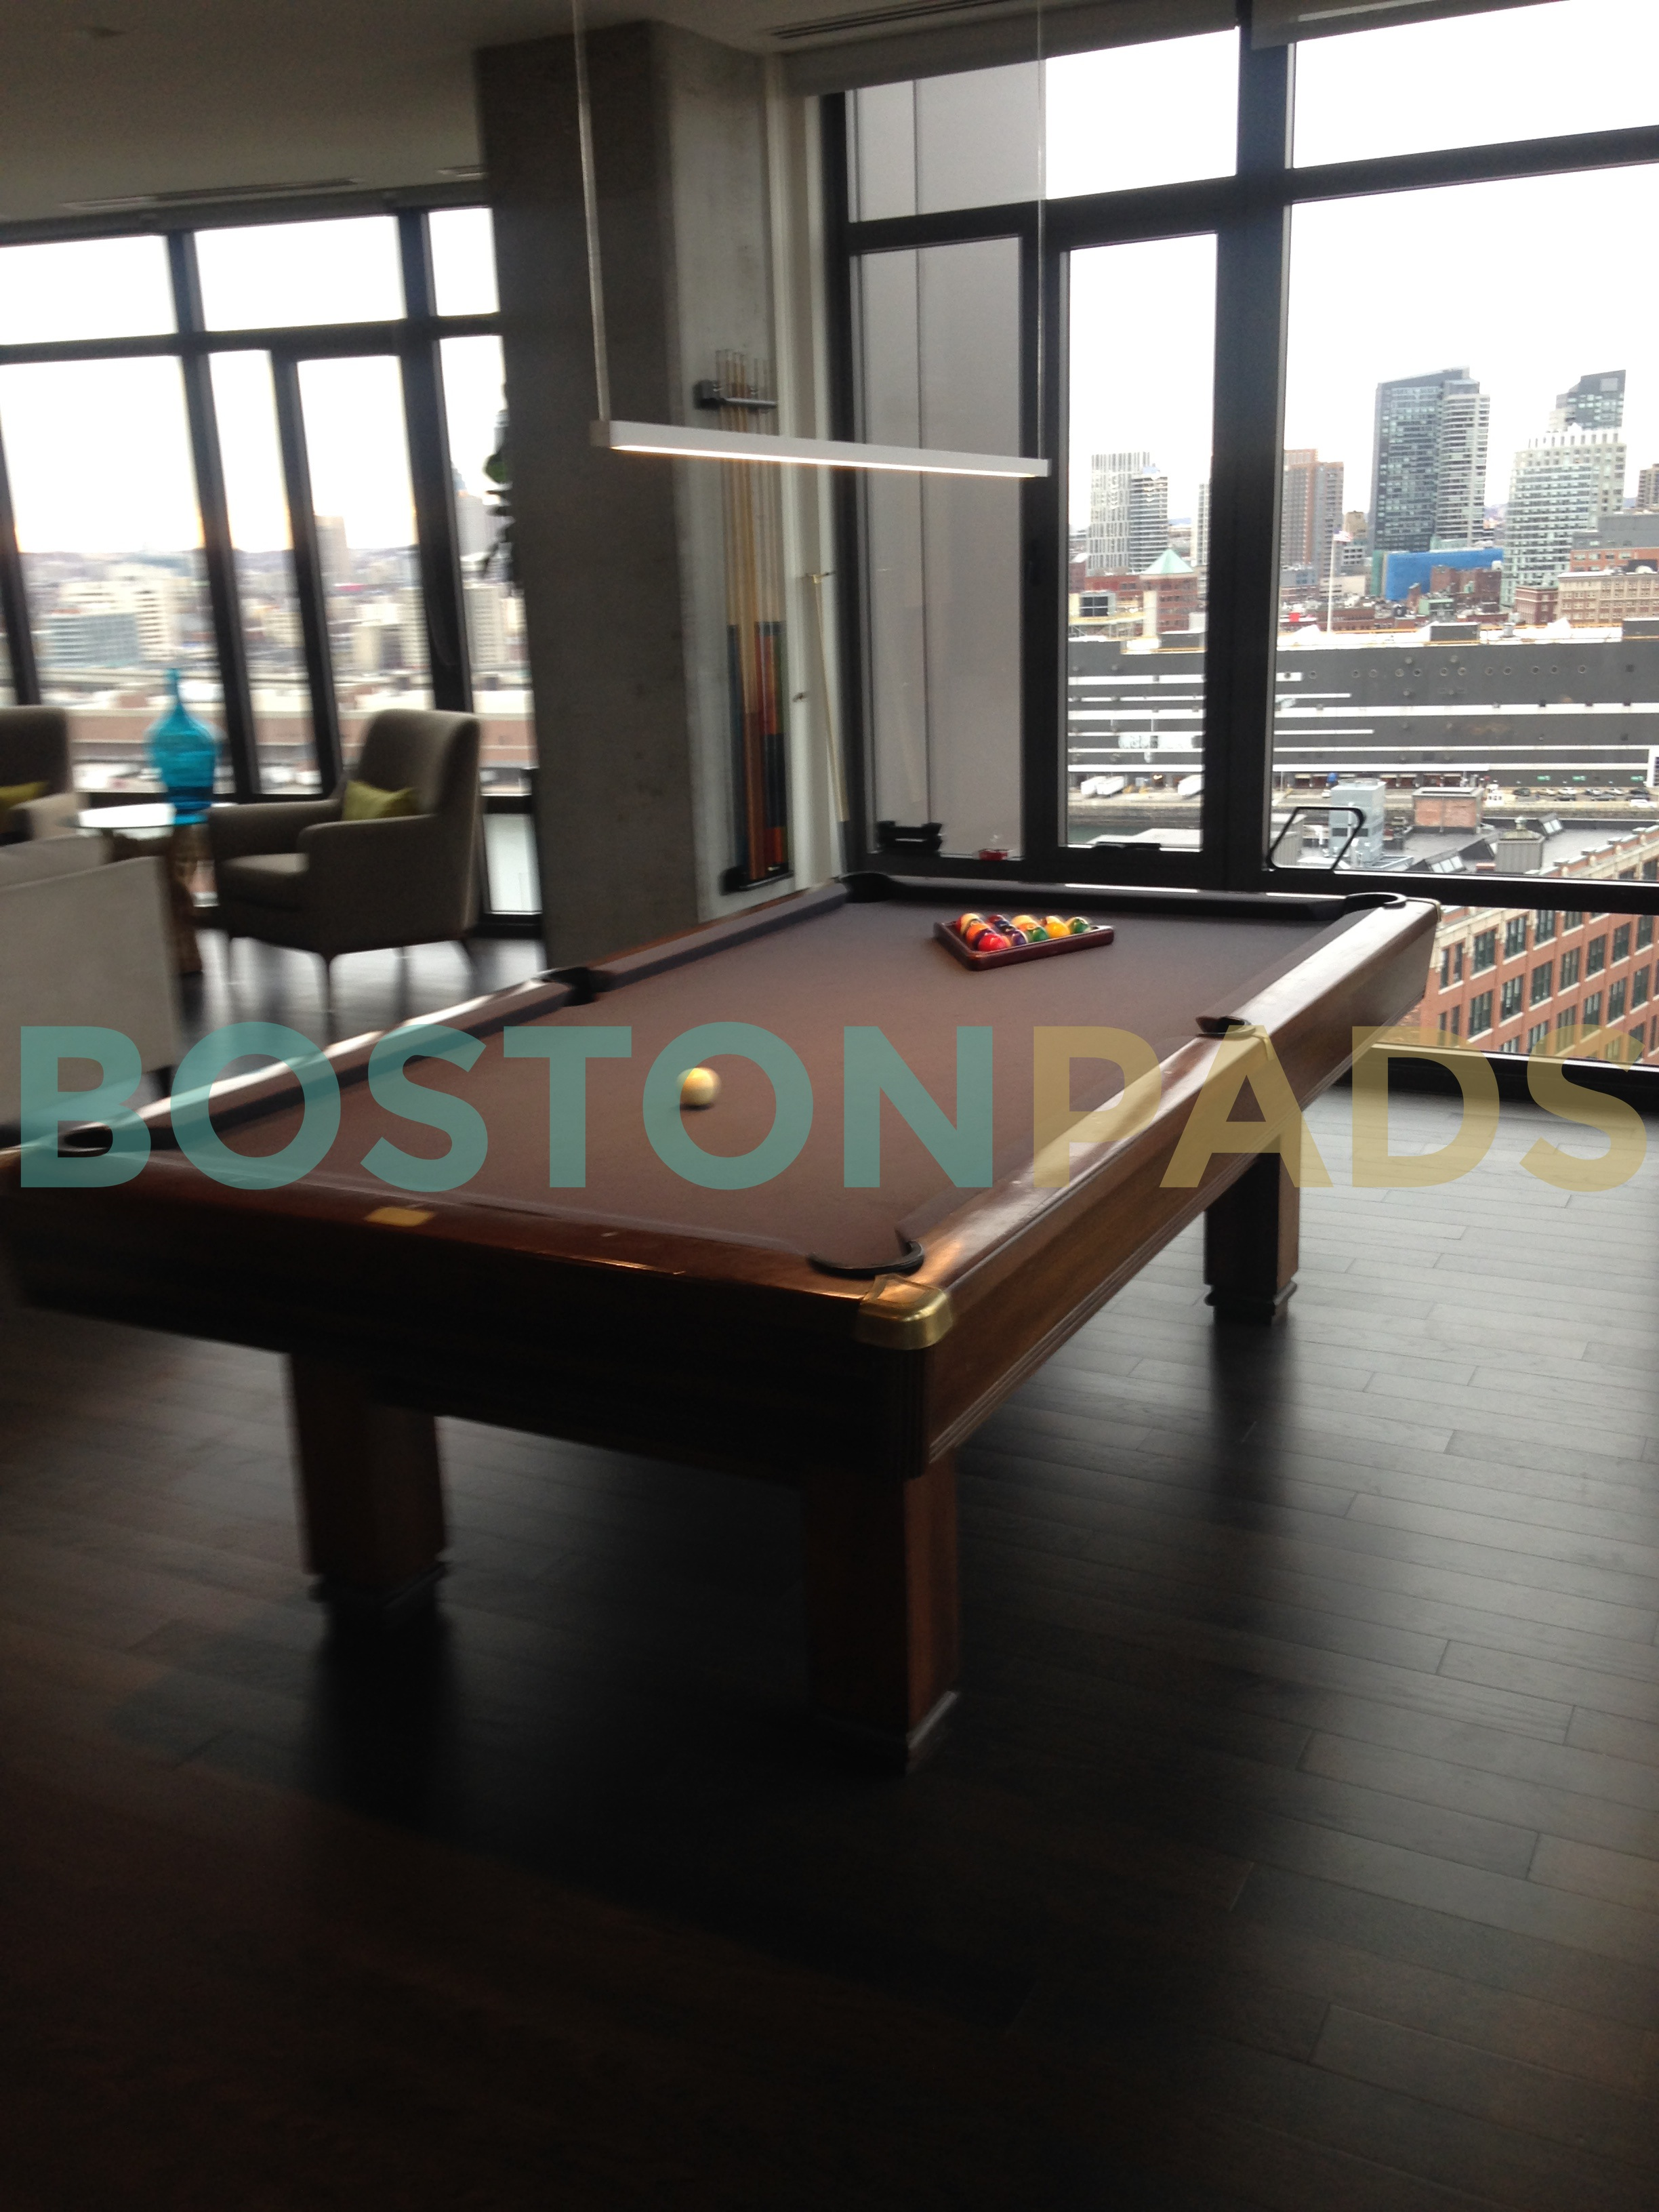 315 on A pool table